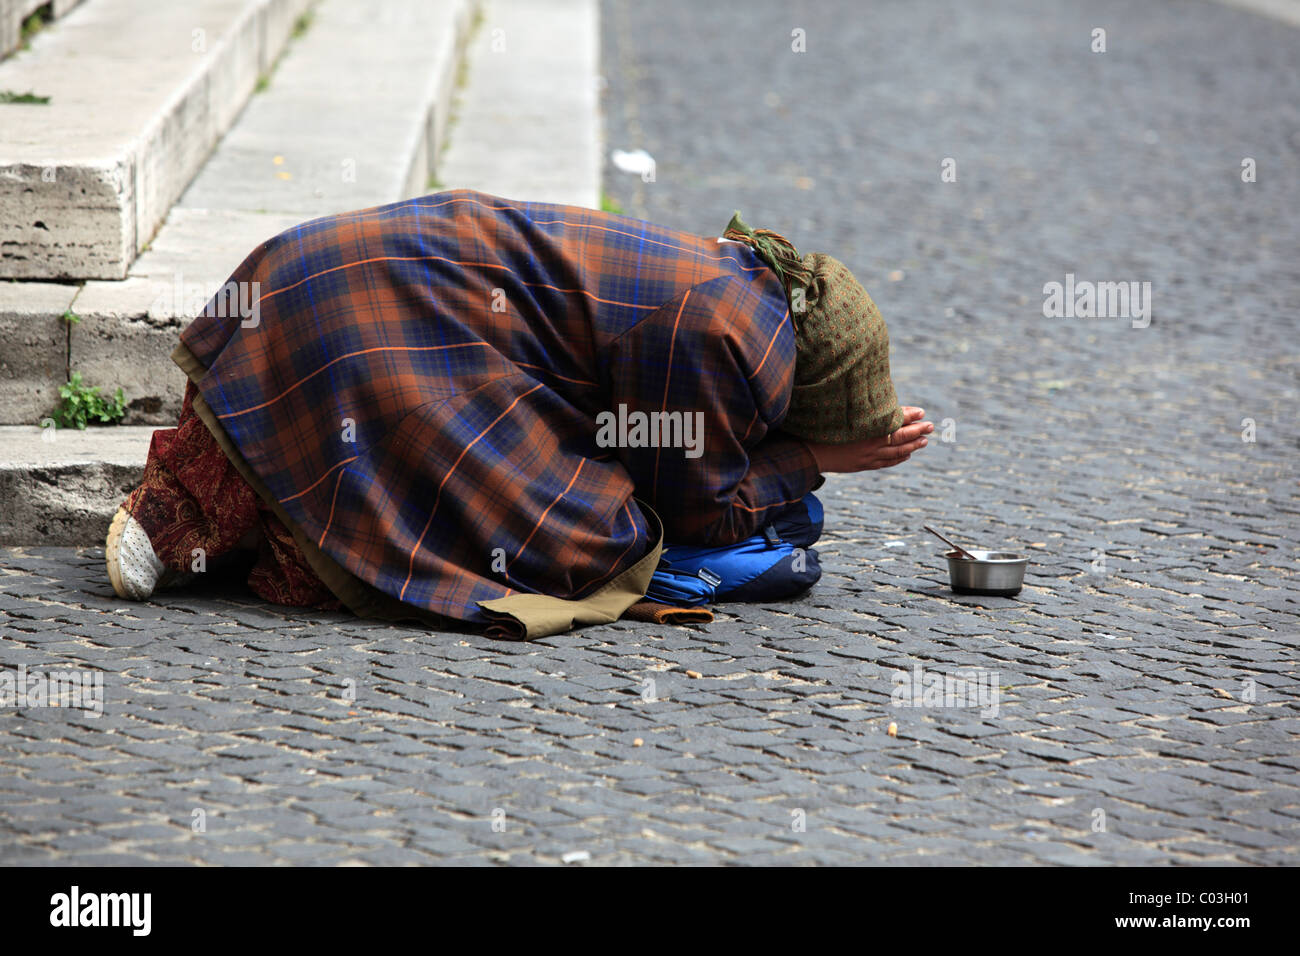 Beggar, Rome, Italy, Europe Stock Photo